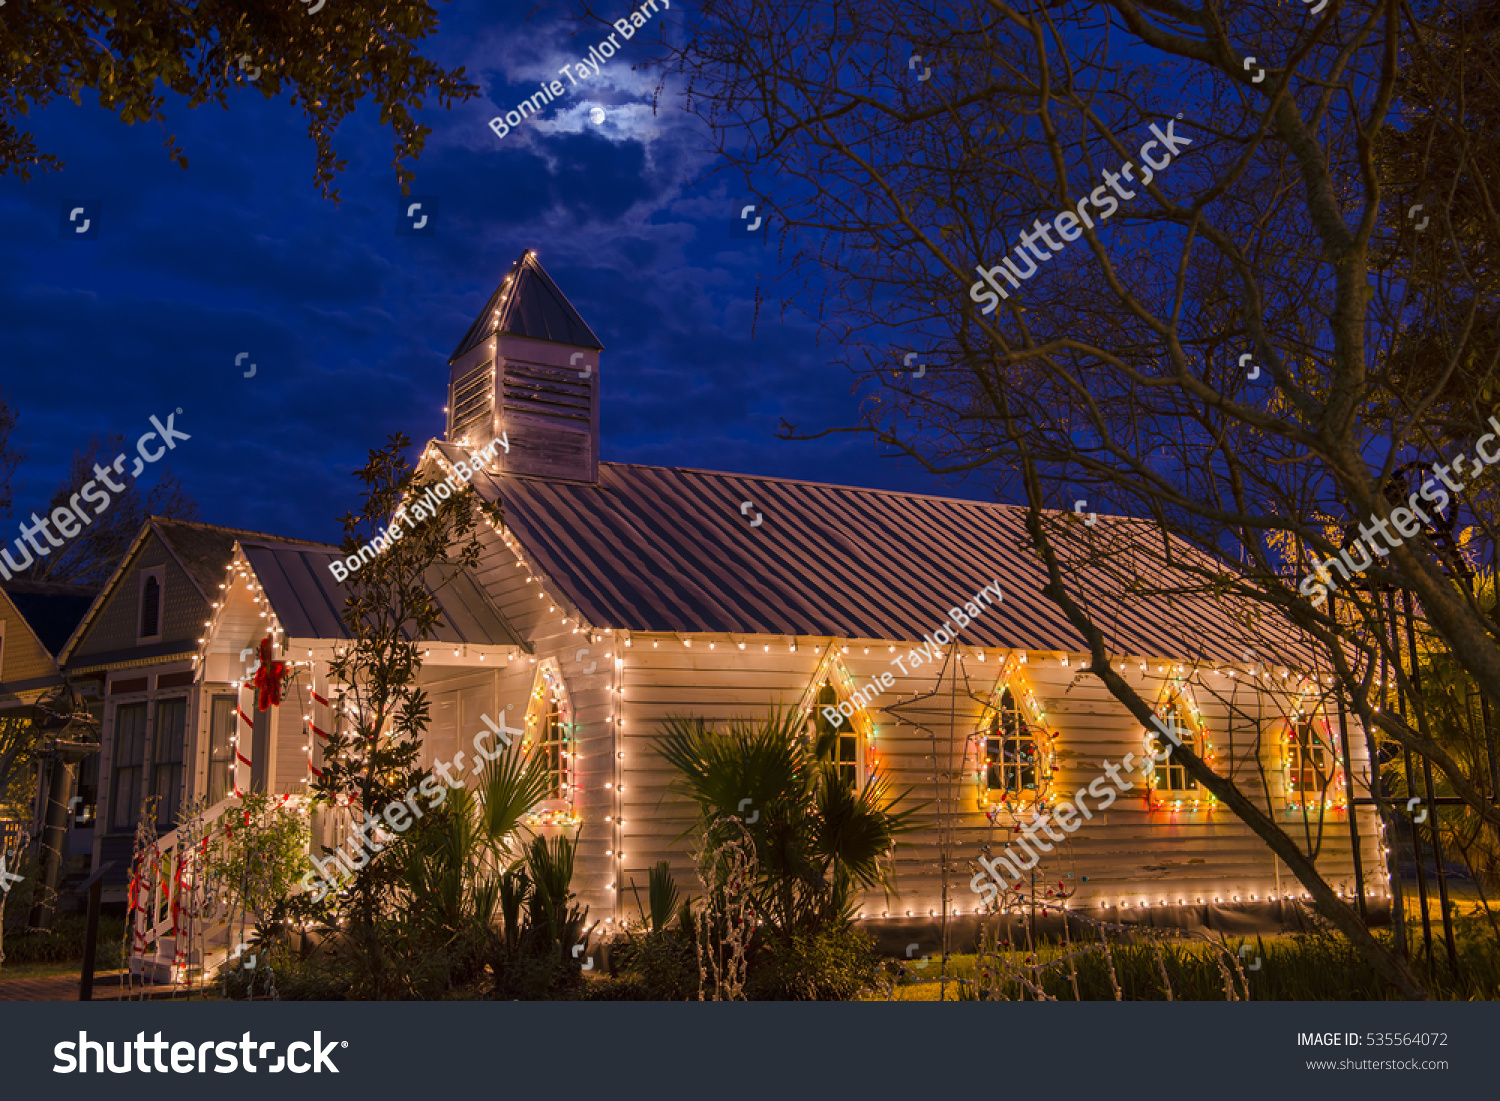 Old Country Church Decorated For Christmas On A Blue December Night In Louisiana